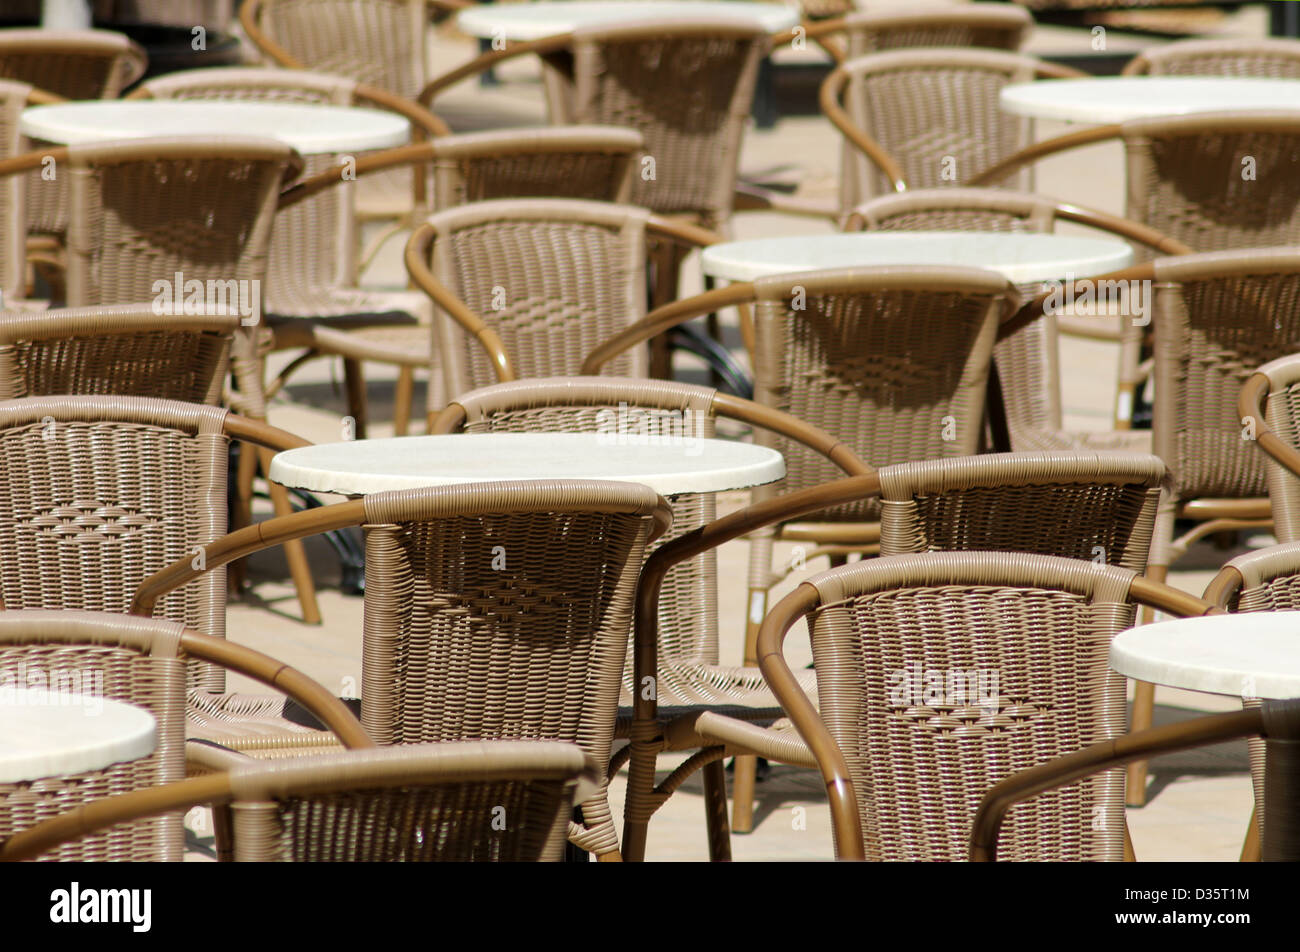 Outdoor tables and chairs in seating area. - Stock Image